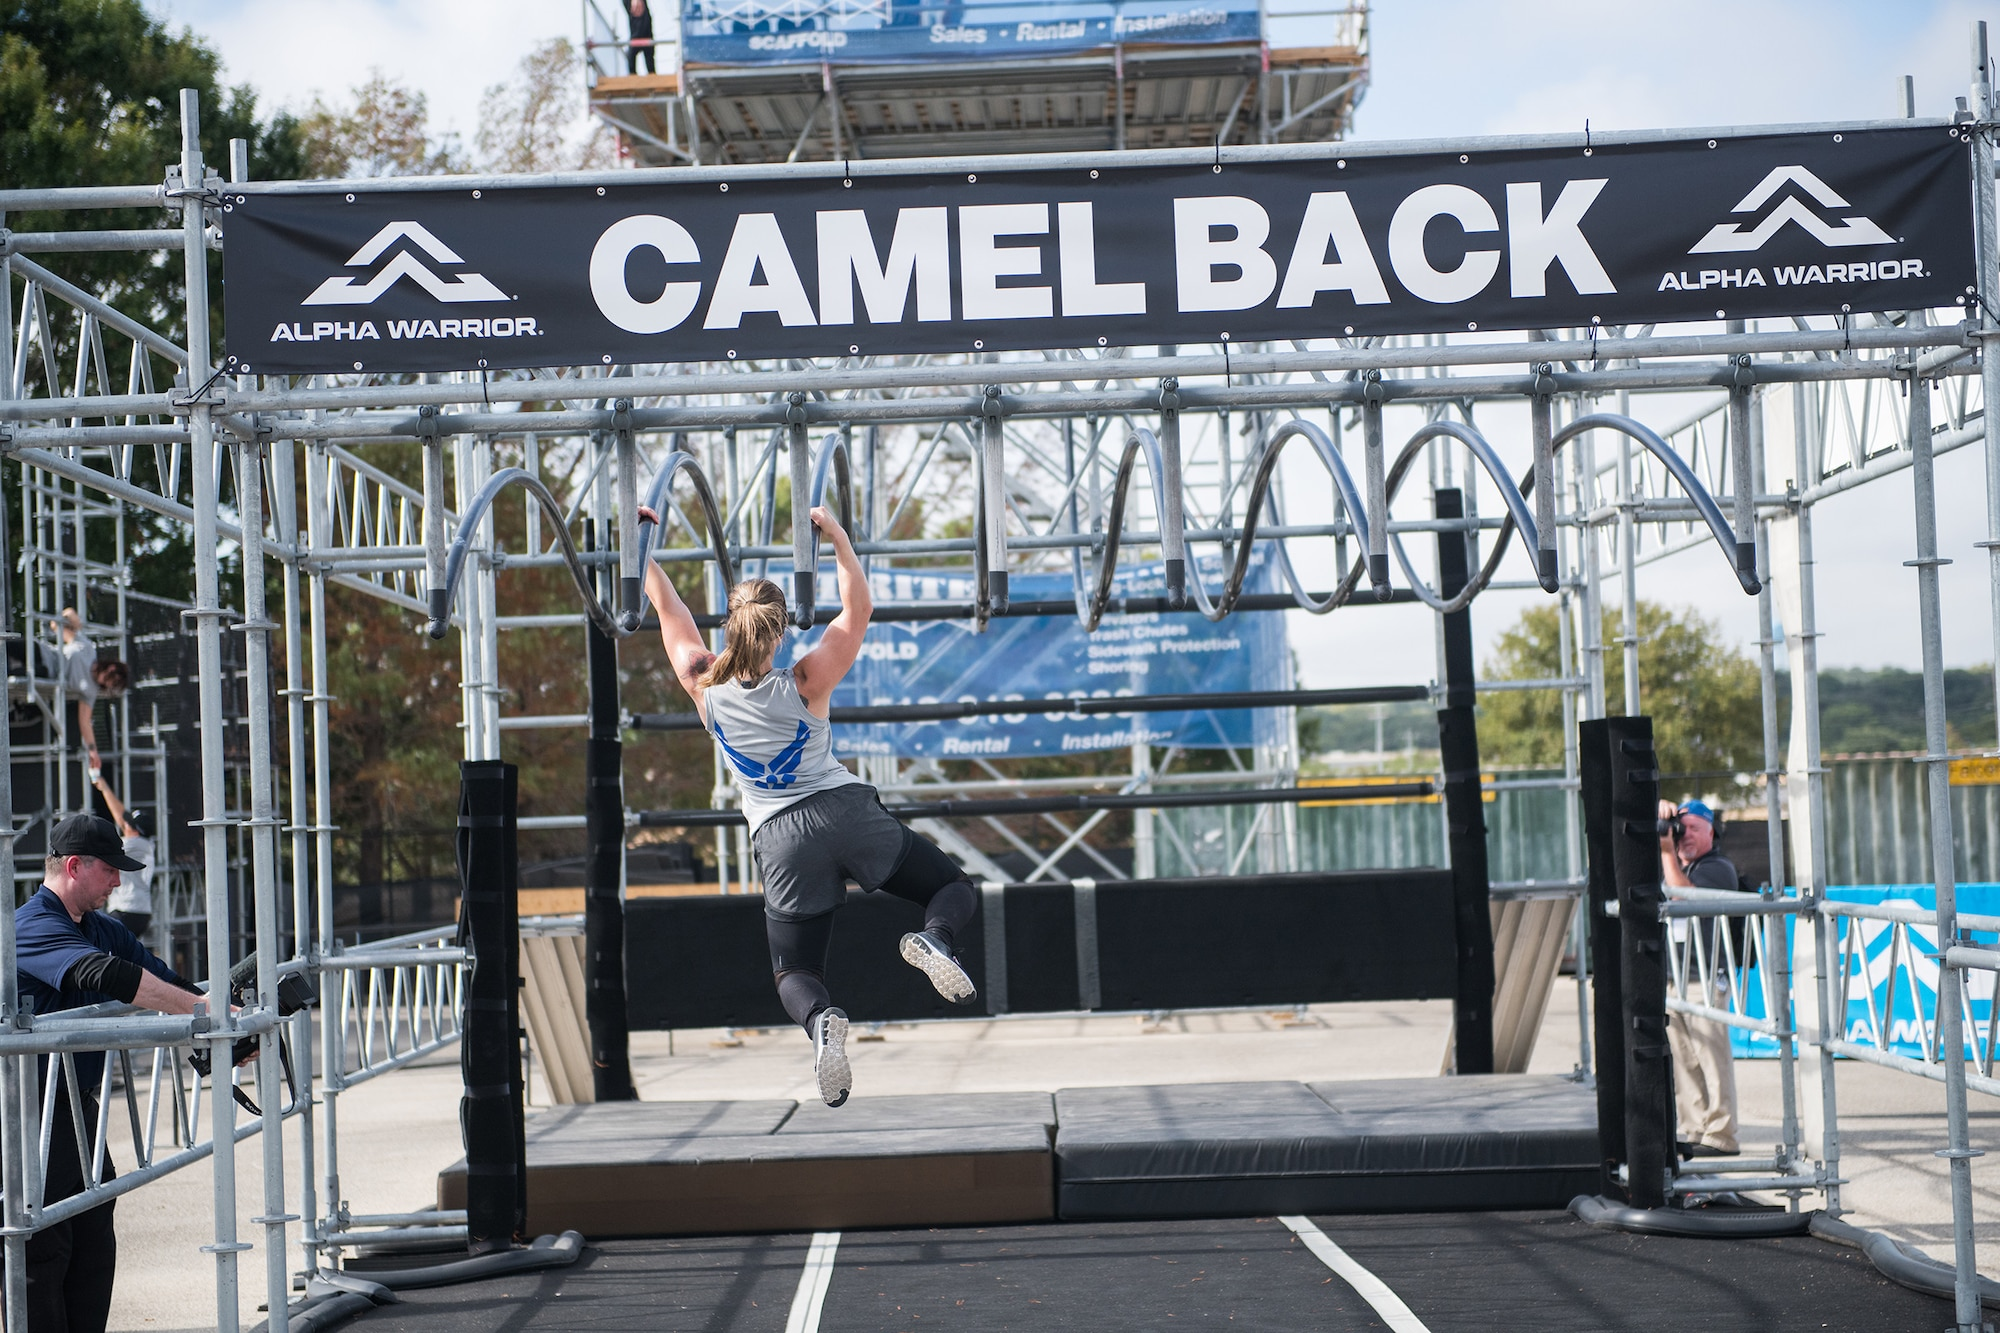 Staff Sgt. Tiffanie Sawatzke takes on the camel back obstacle during the 2019 Air Force Alpha Warrior Final Battle at Retama Park, Selma, Texas, Sept. 12, 2019. Air Force, Army and Navy military athletes competed against each other to determine the top three men and three women for each service. Those athletes make up the service teams that will go against each other during the 2019 Inter-Service Battle Sept. 14 at Retama. The Air Force partnered with Alpha Warrior three years ago to deliver functional fitness training to Airmen and their families. (U.S. Air Force photo by Sarayuth Pinthong)